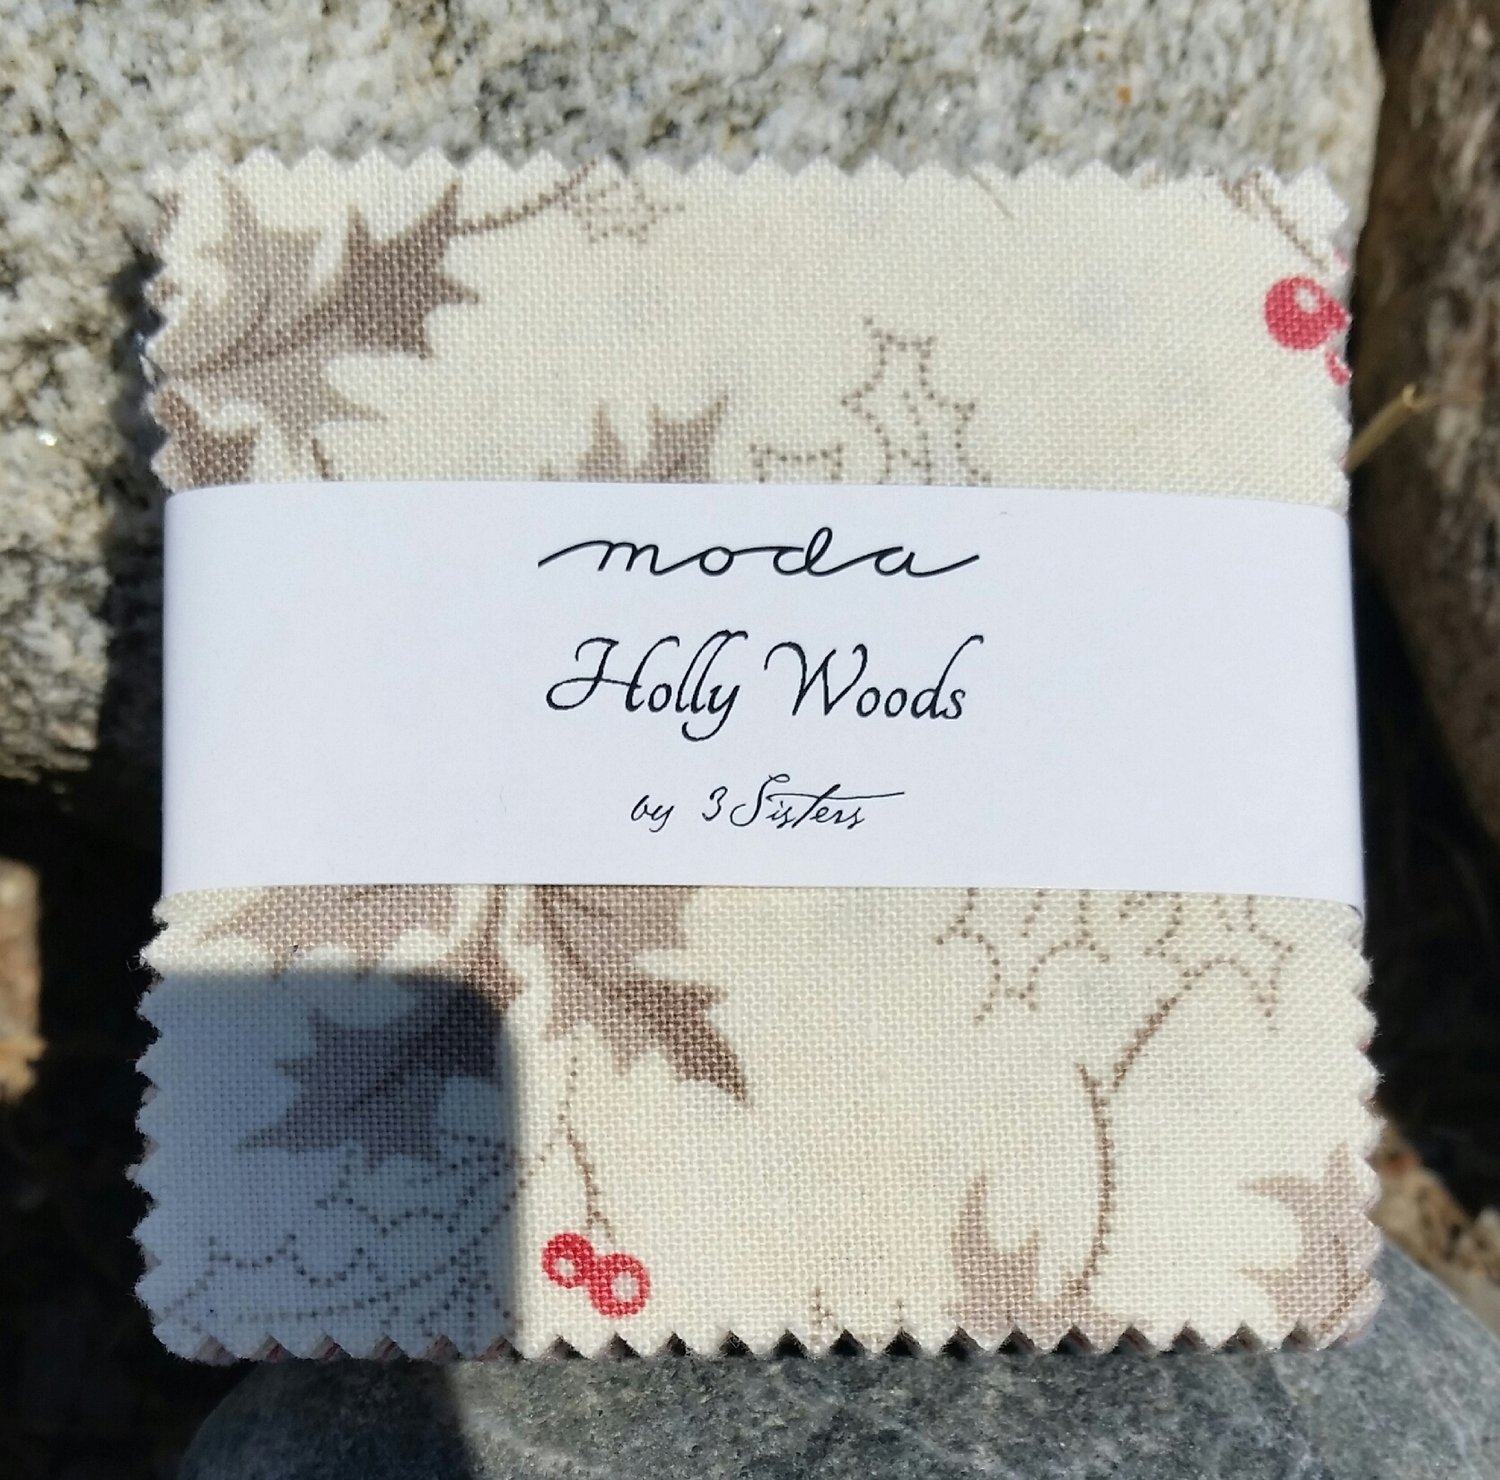 Holly Wood by 3 sisters